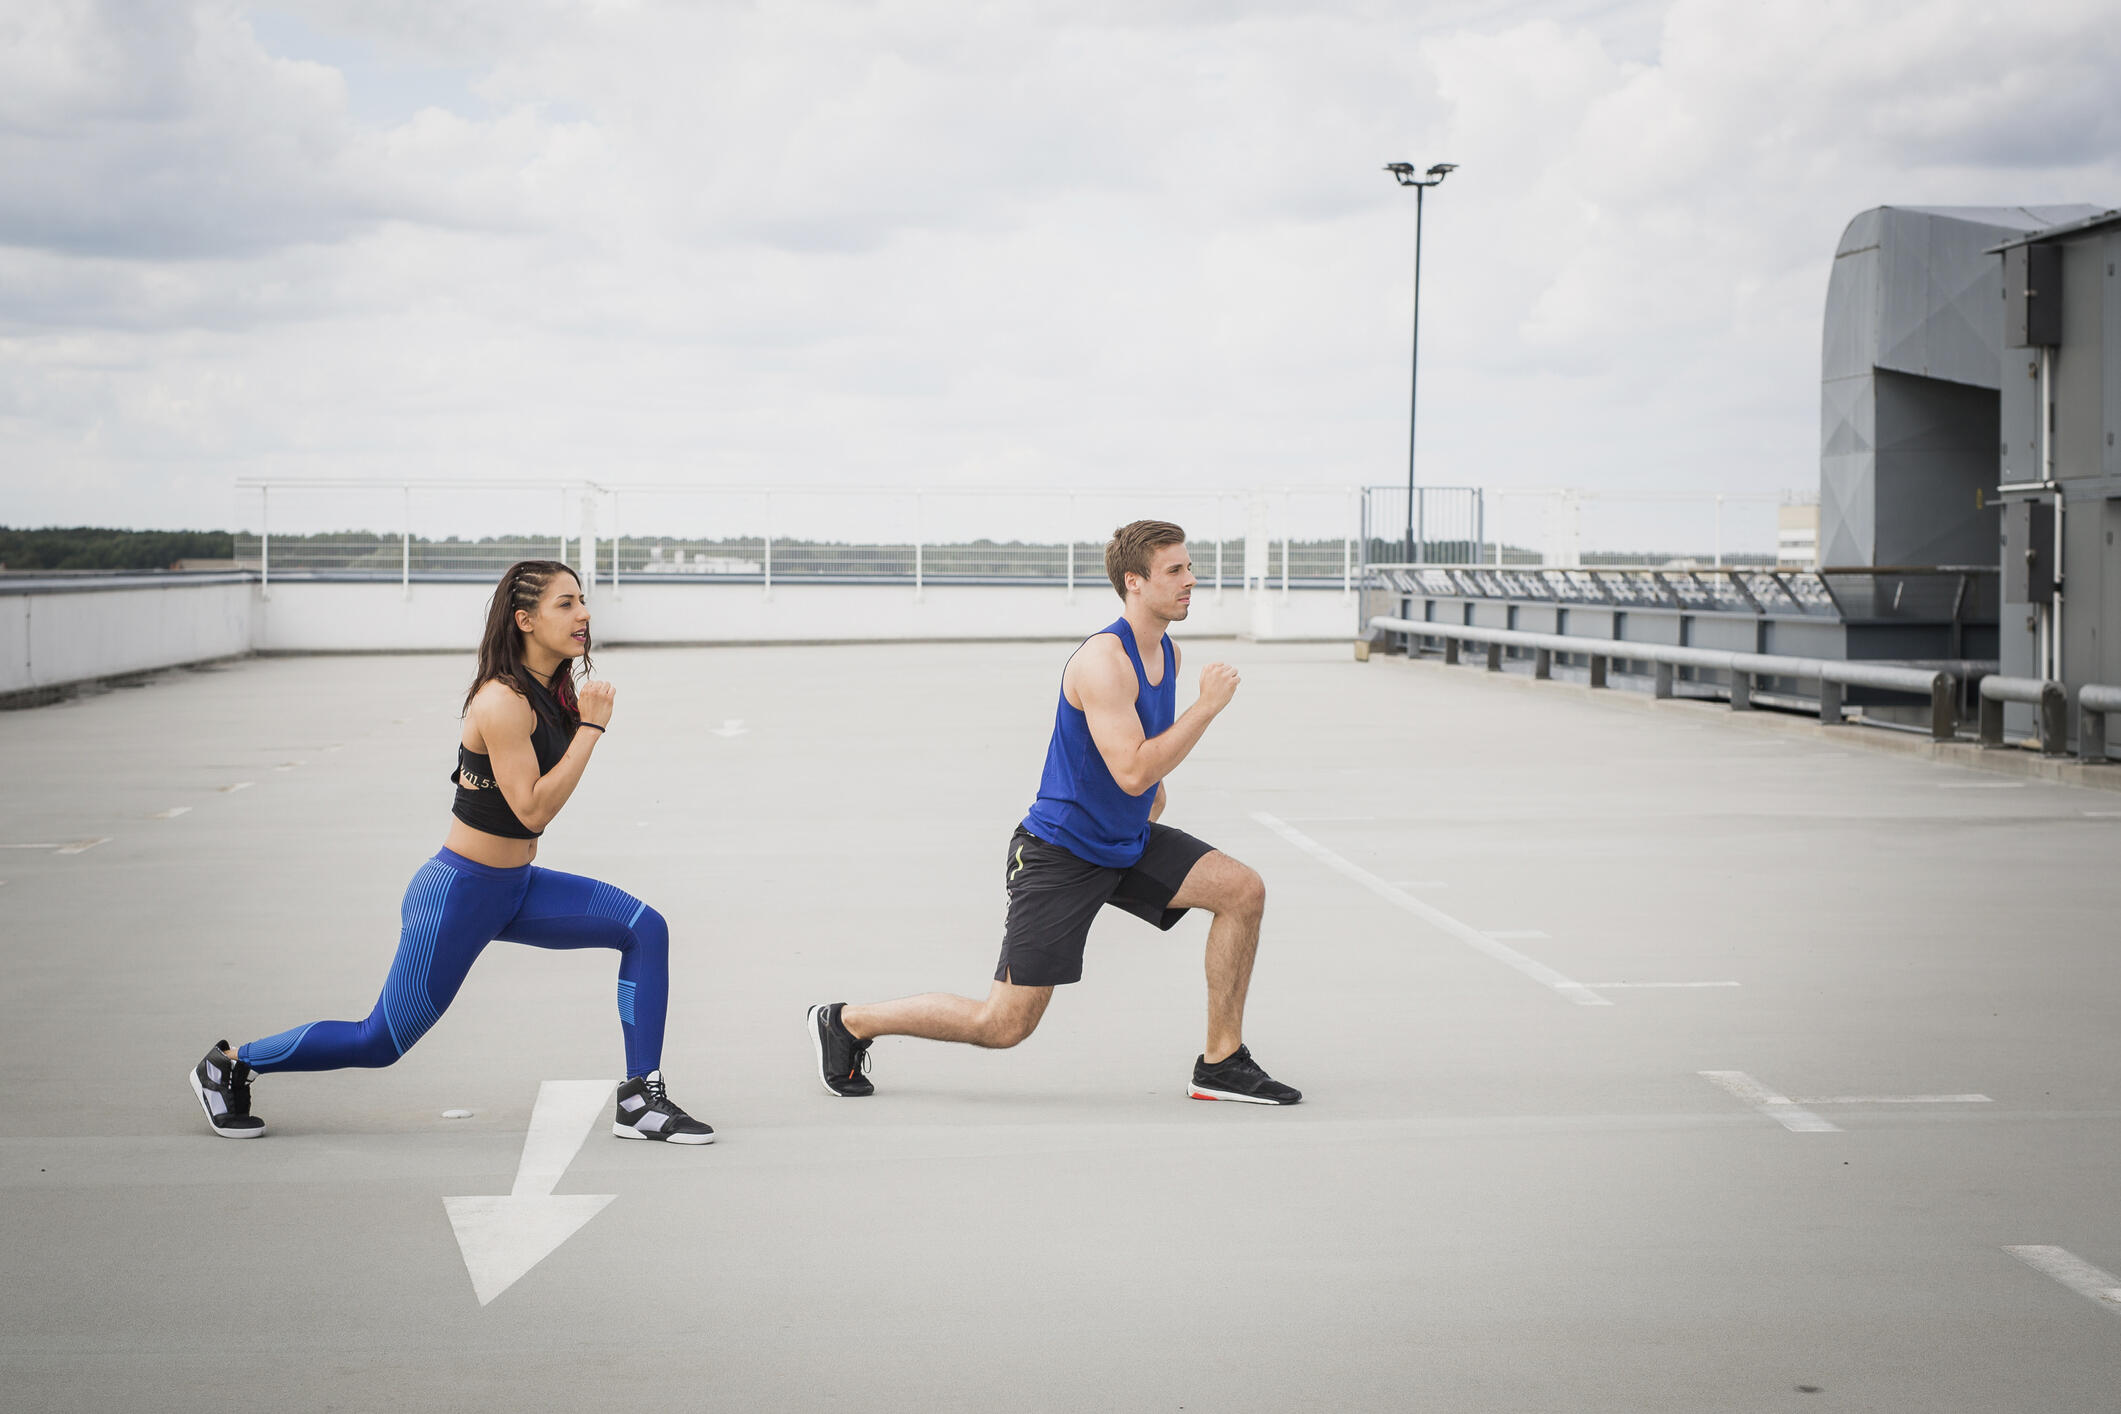 A young woman and man do lunges in a rooftop parking lot